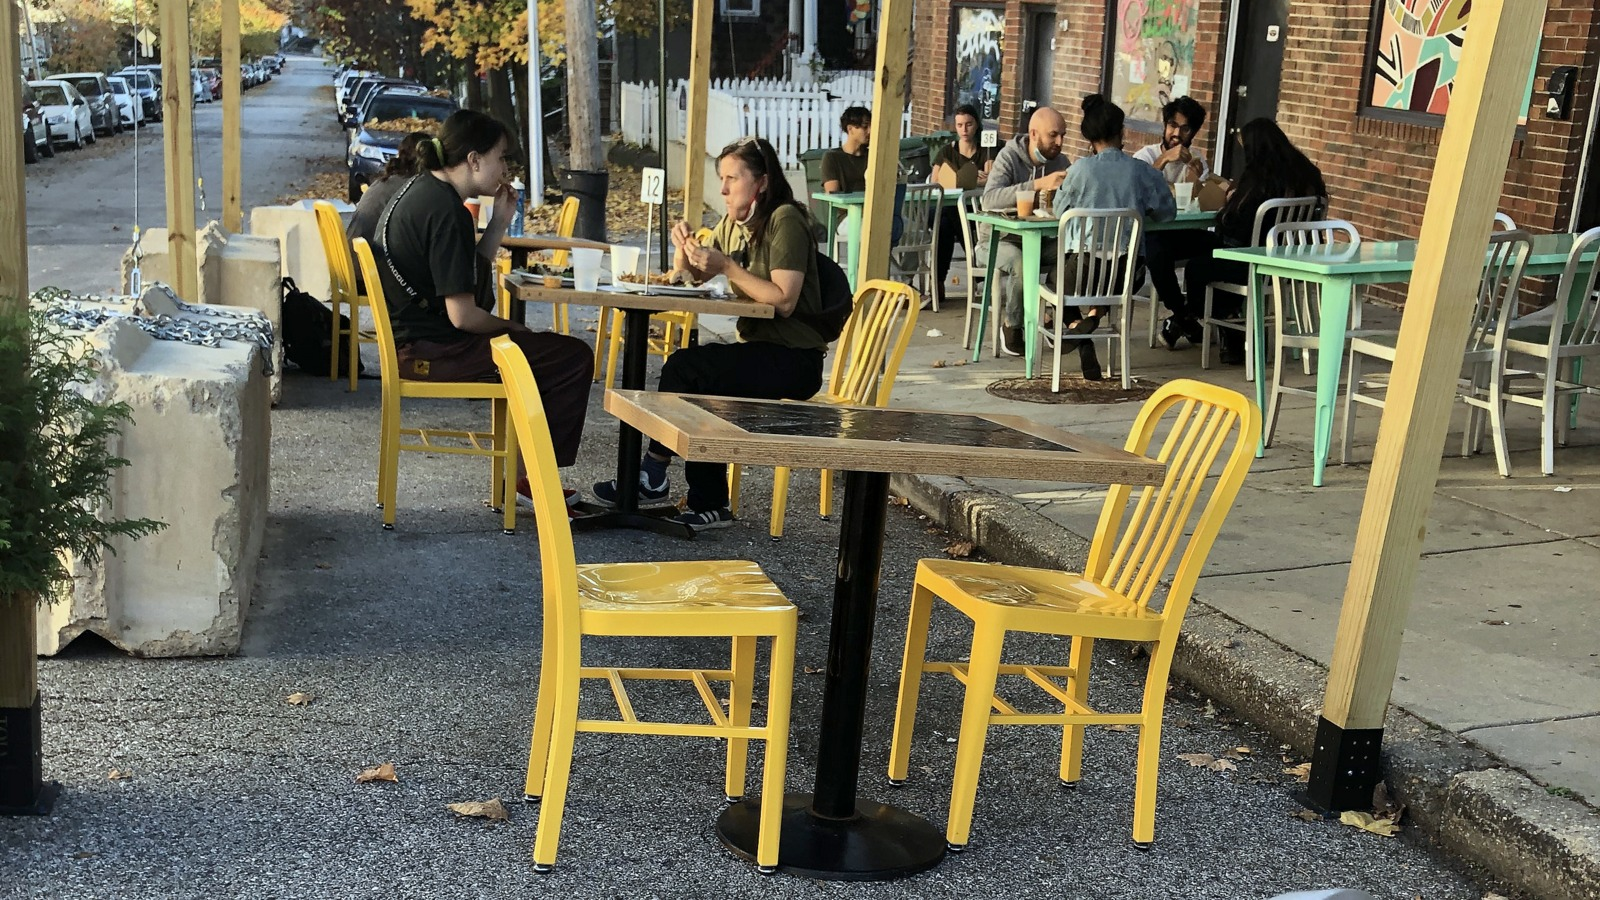 Outdoor dining in Hampden on a warm November afternoon. (Fern Shen)